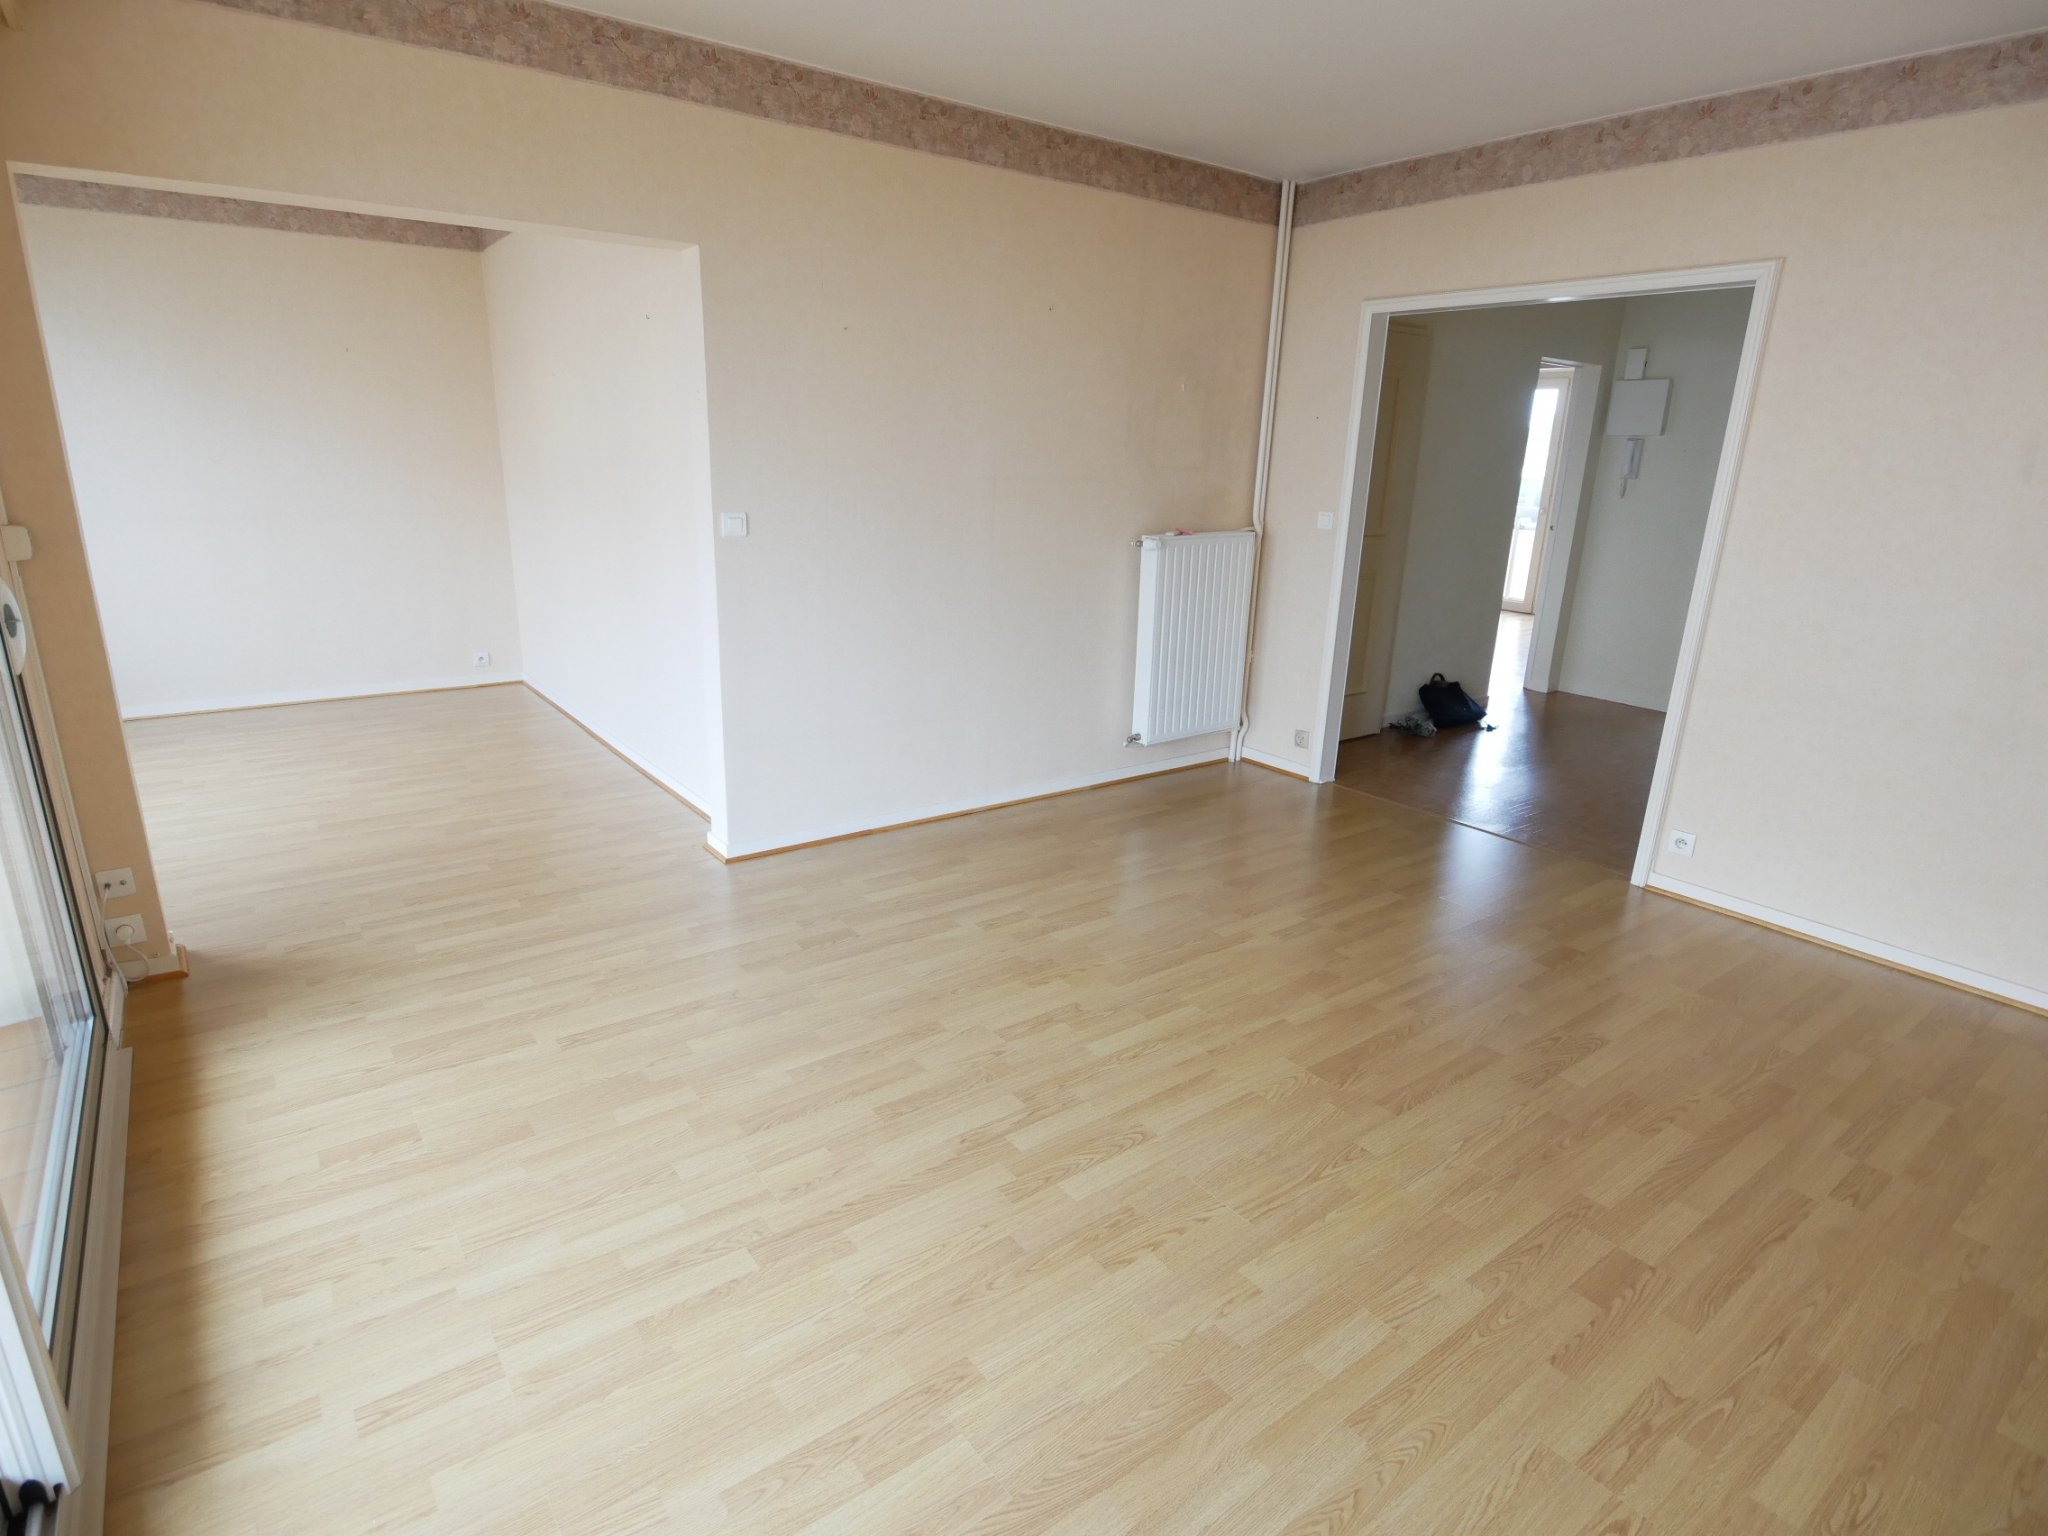 A5895-CABINET-SIBOUT-VENTE-angers